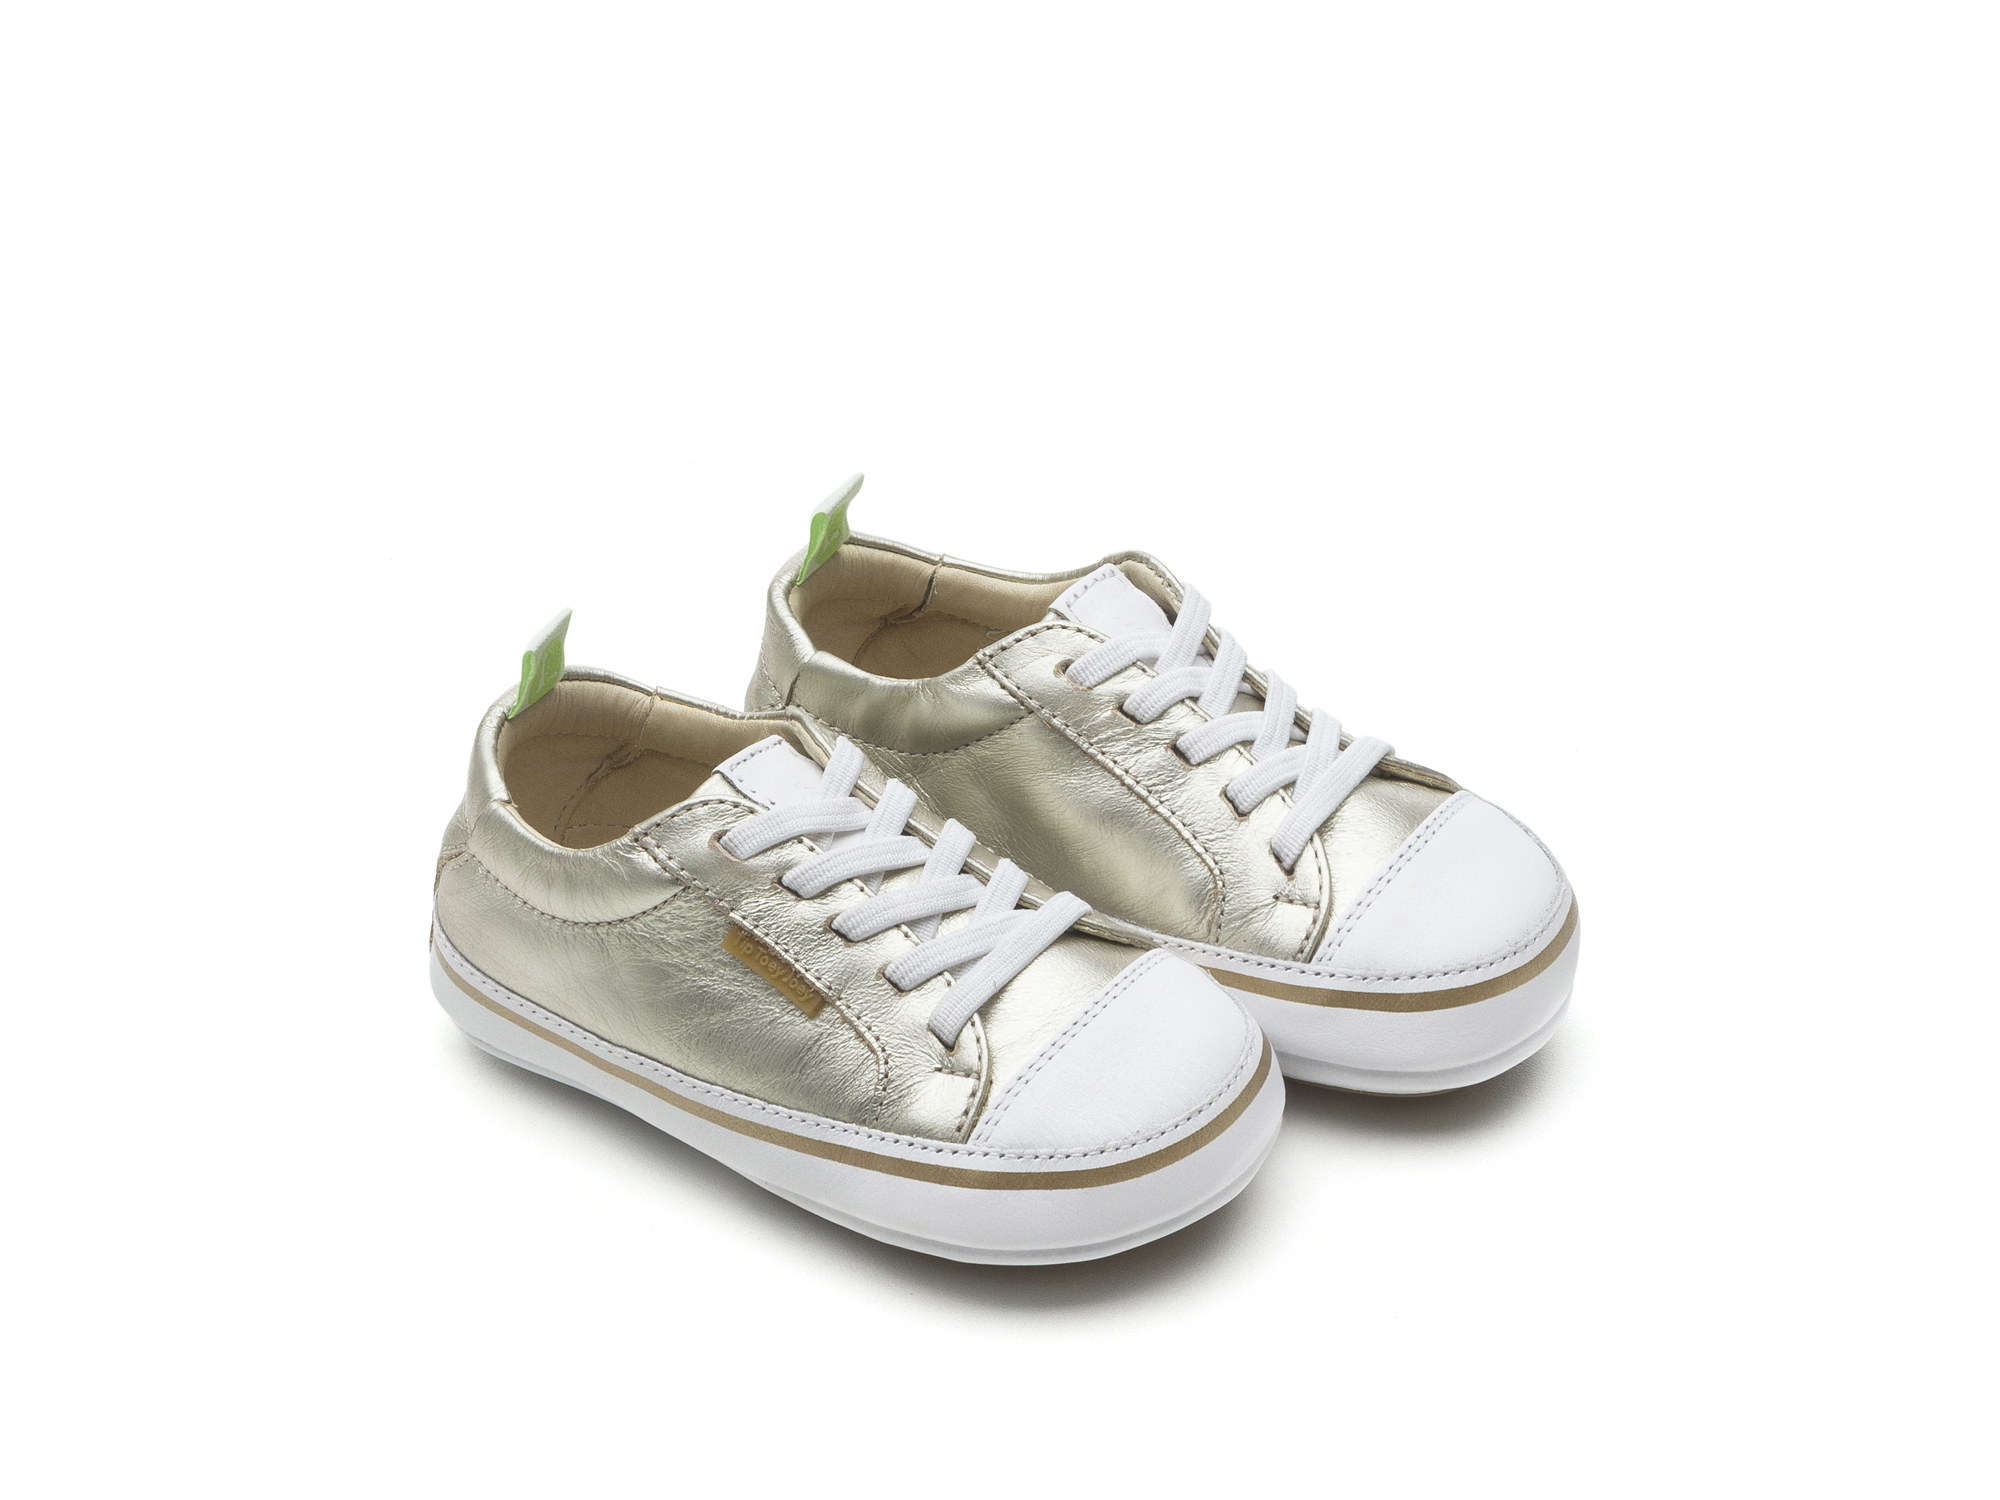 Tênis Funky Whitegold/ White Baby for ages 0 to 2 years - 0